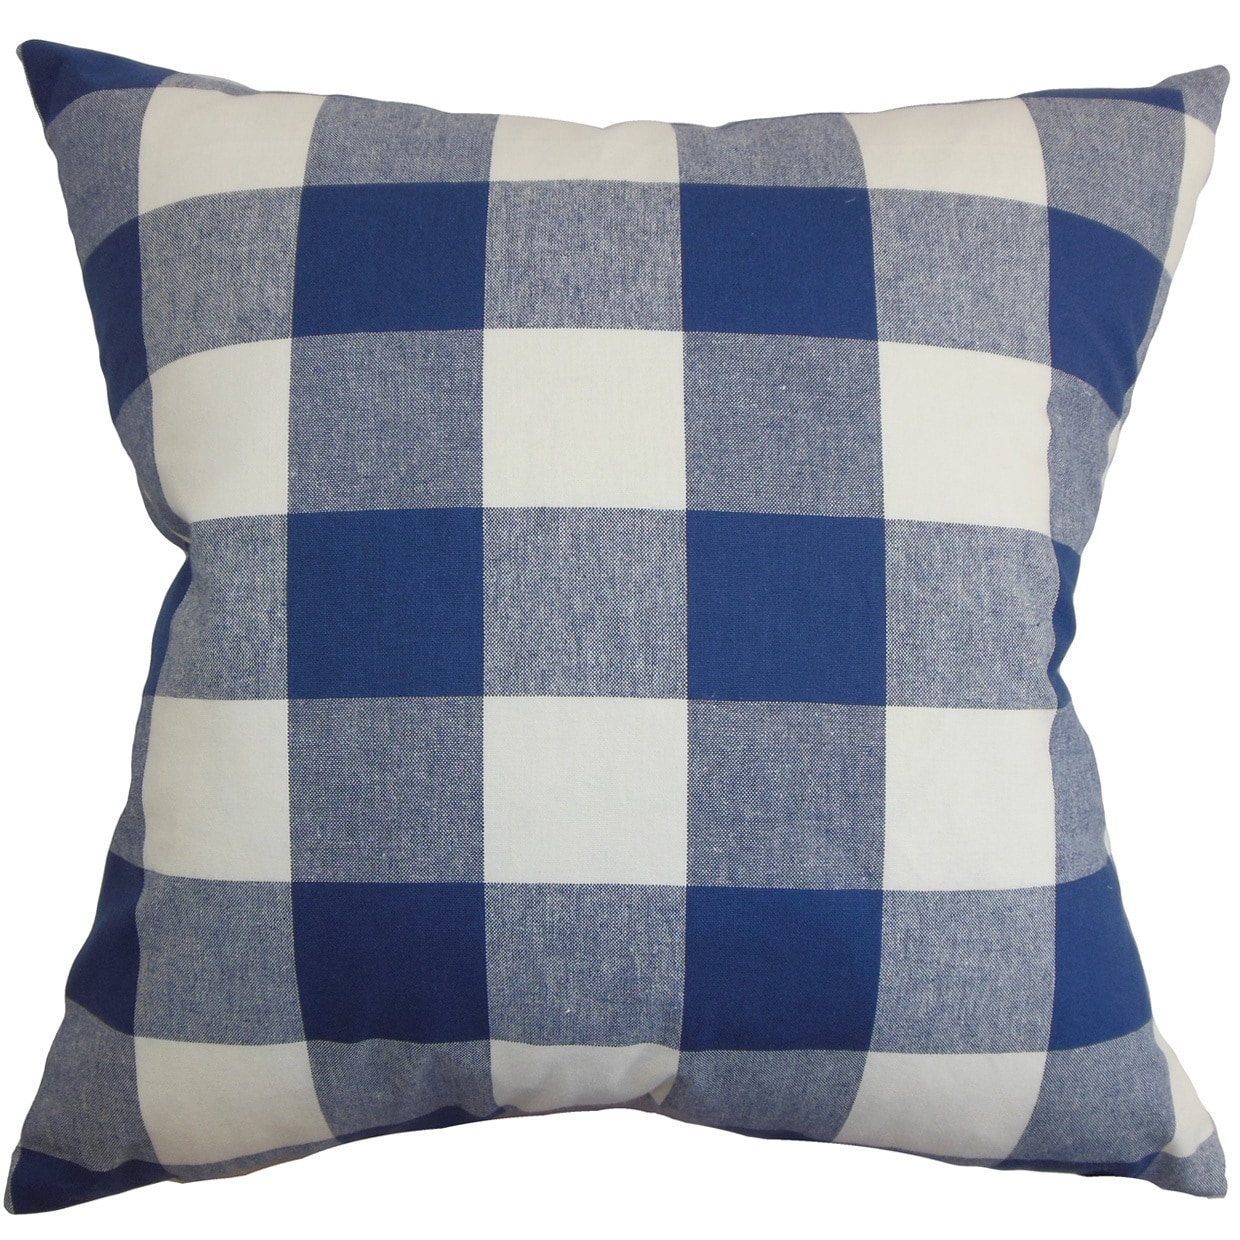 The Pillow Collection Keats Plaid Bedding Sham Aqua Euro//26 x 26